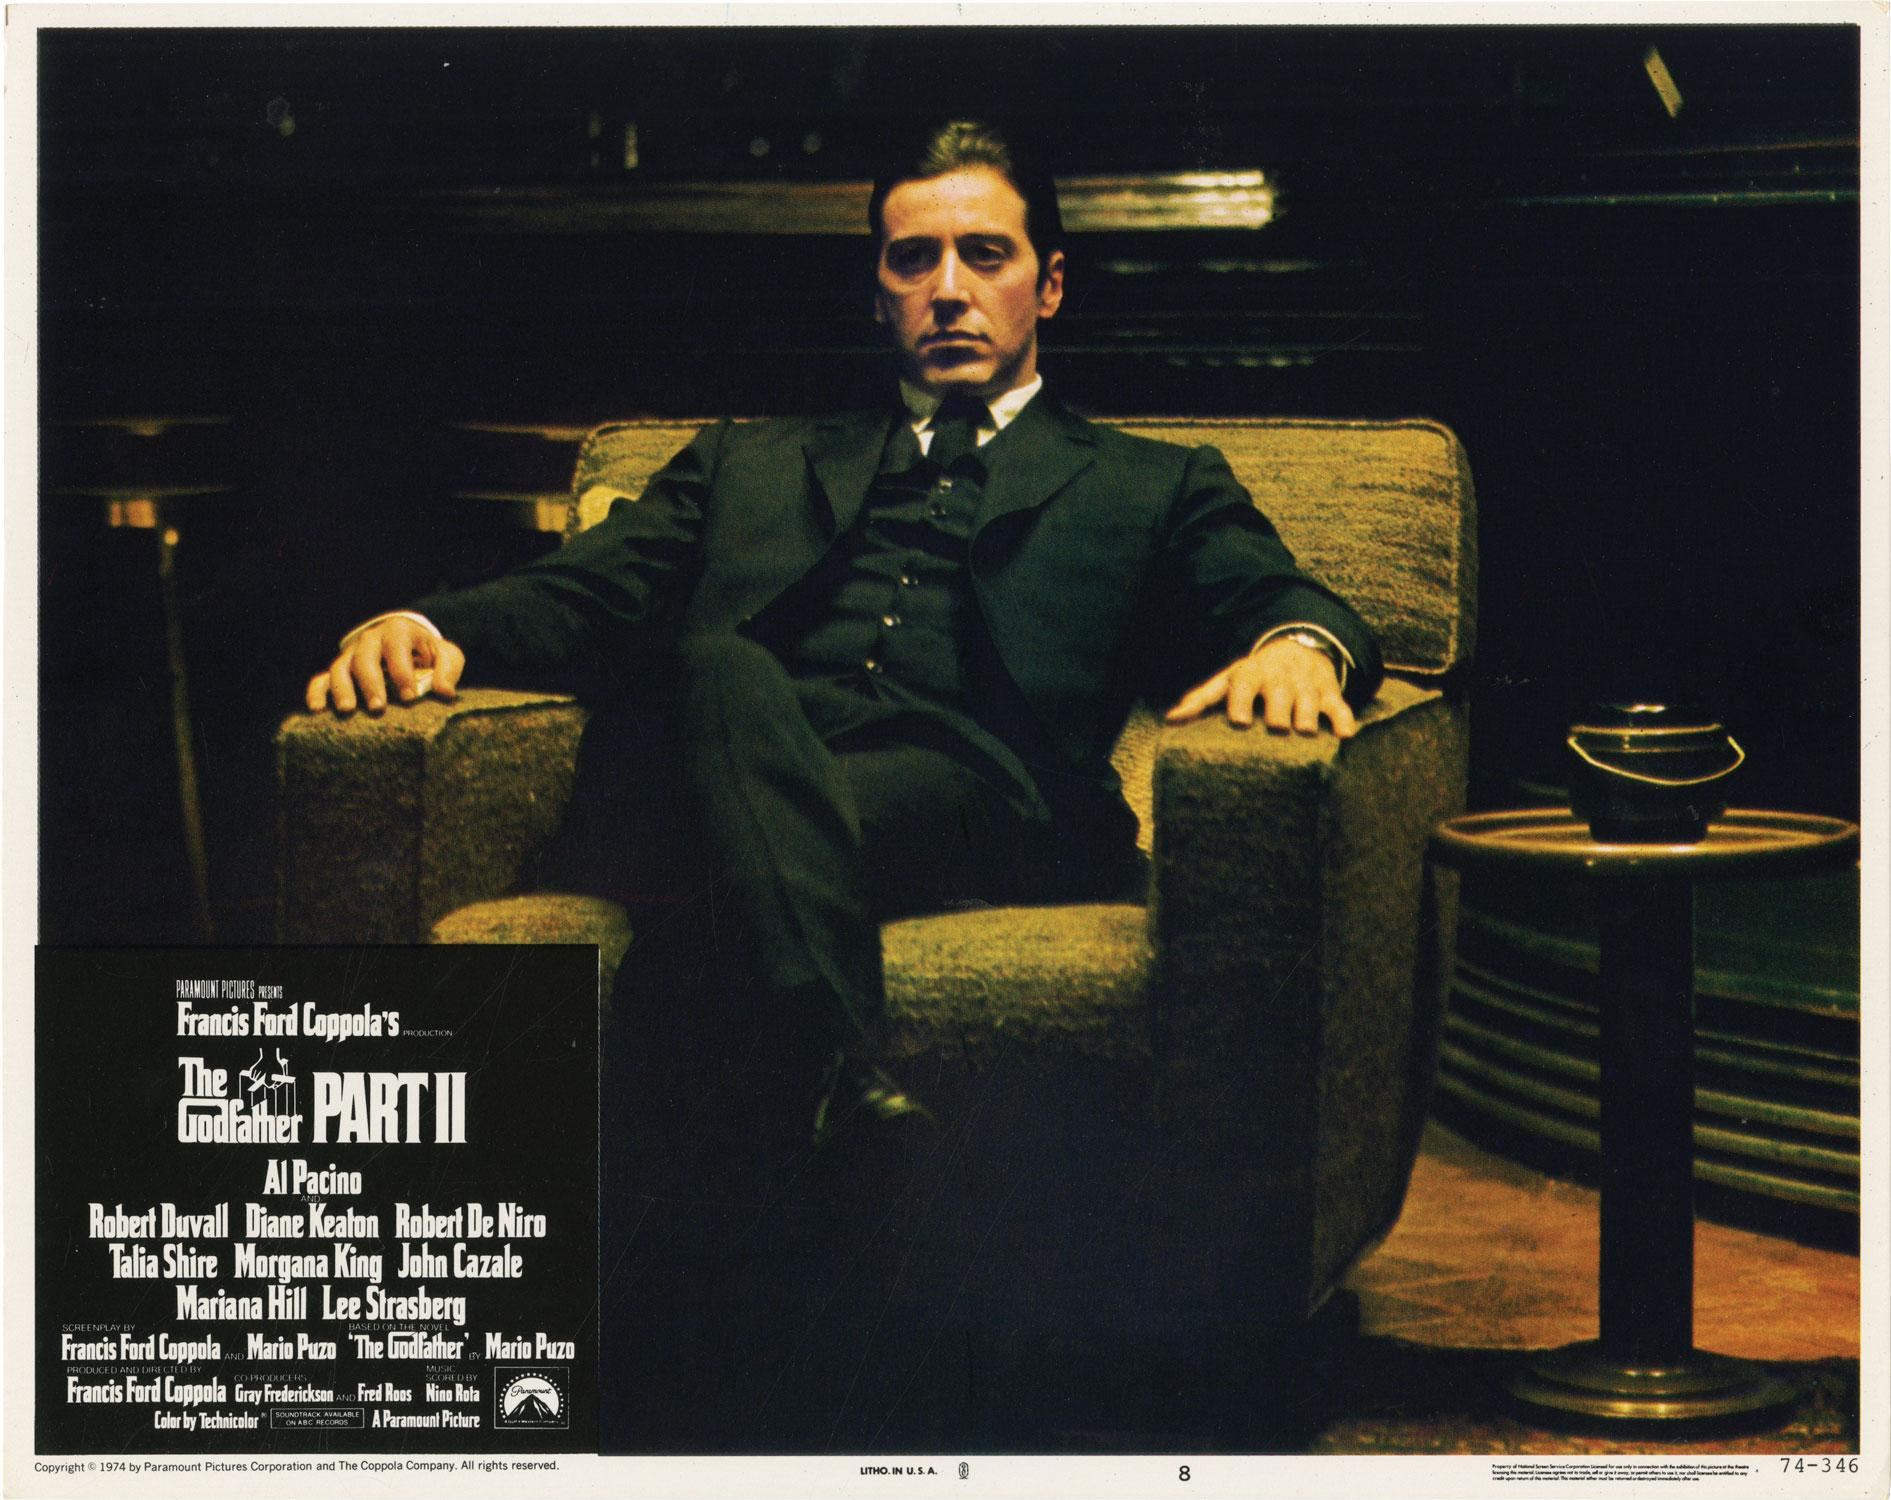 The Godfather, Part II (Complete US lobby card set for the 1974 film) Coppola, Francis Ford (director); Mario Puzo (novel); Nino Rota (composer); Rob